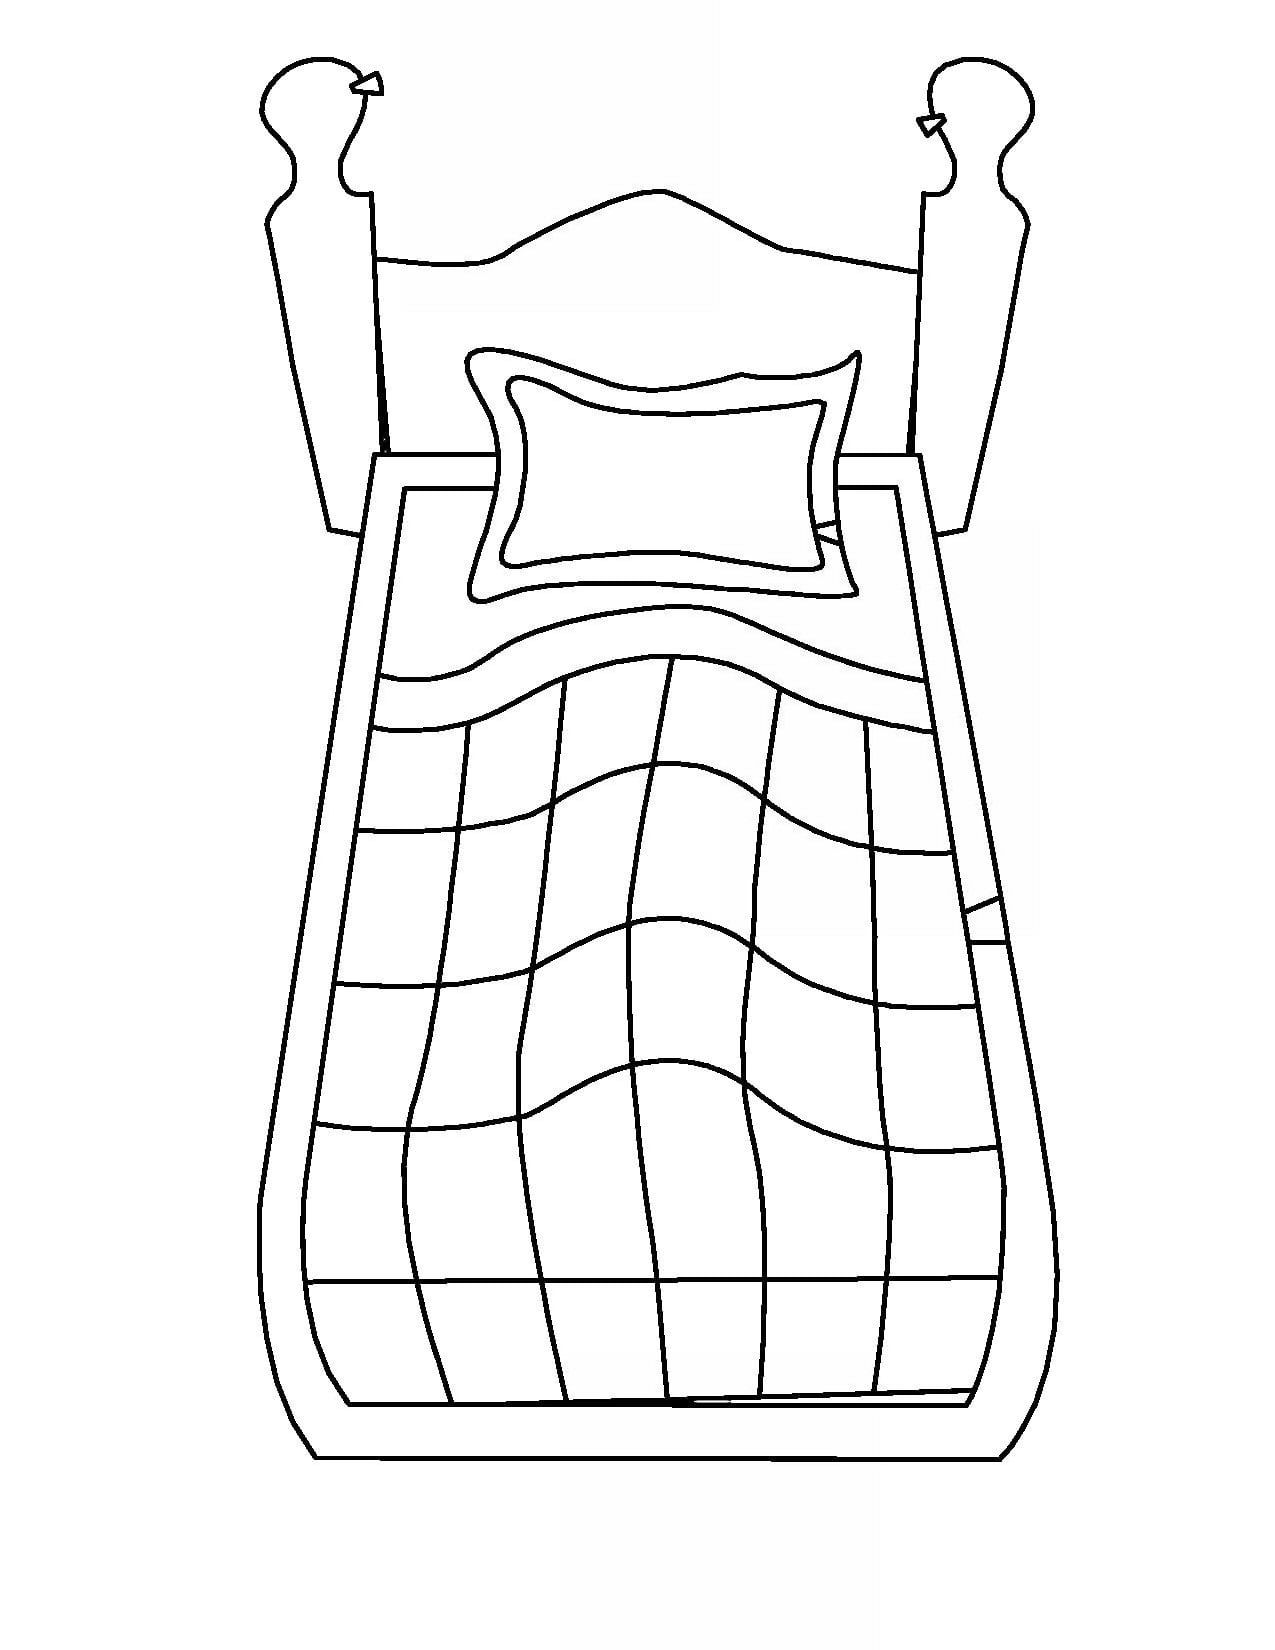 Bed Quilt Outline Yahoo Image Search Results Pattern Coloring Pages Coloring Pages Underground Railroad Quilts